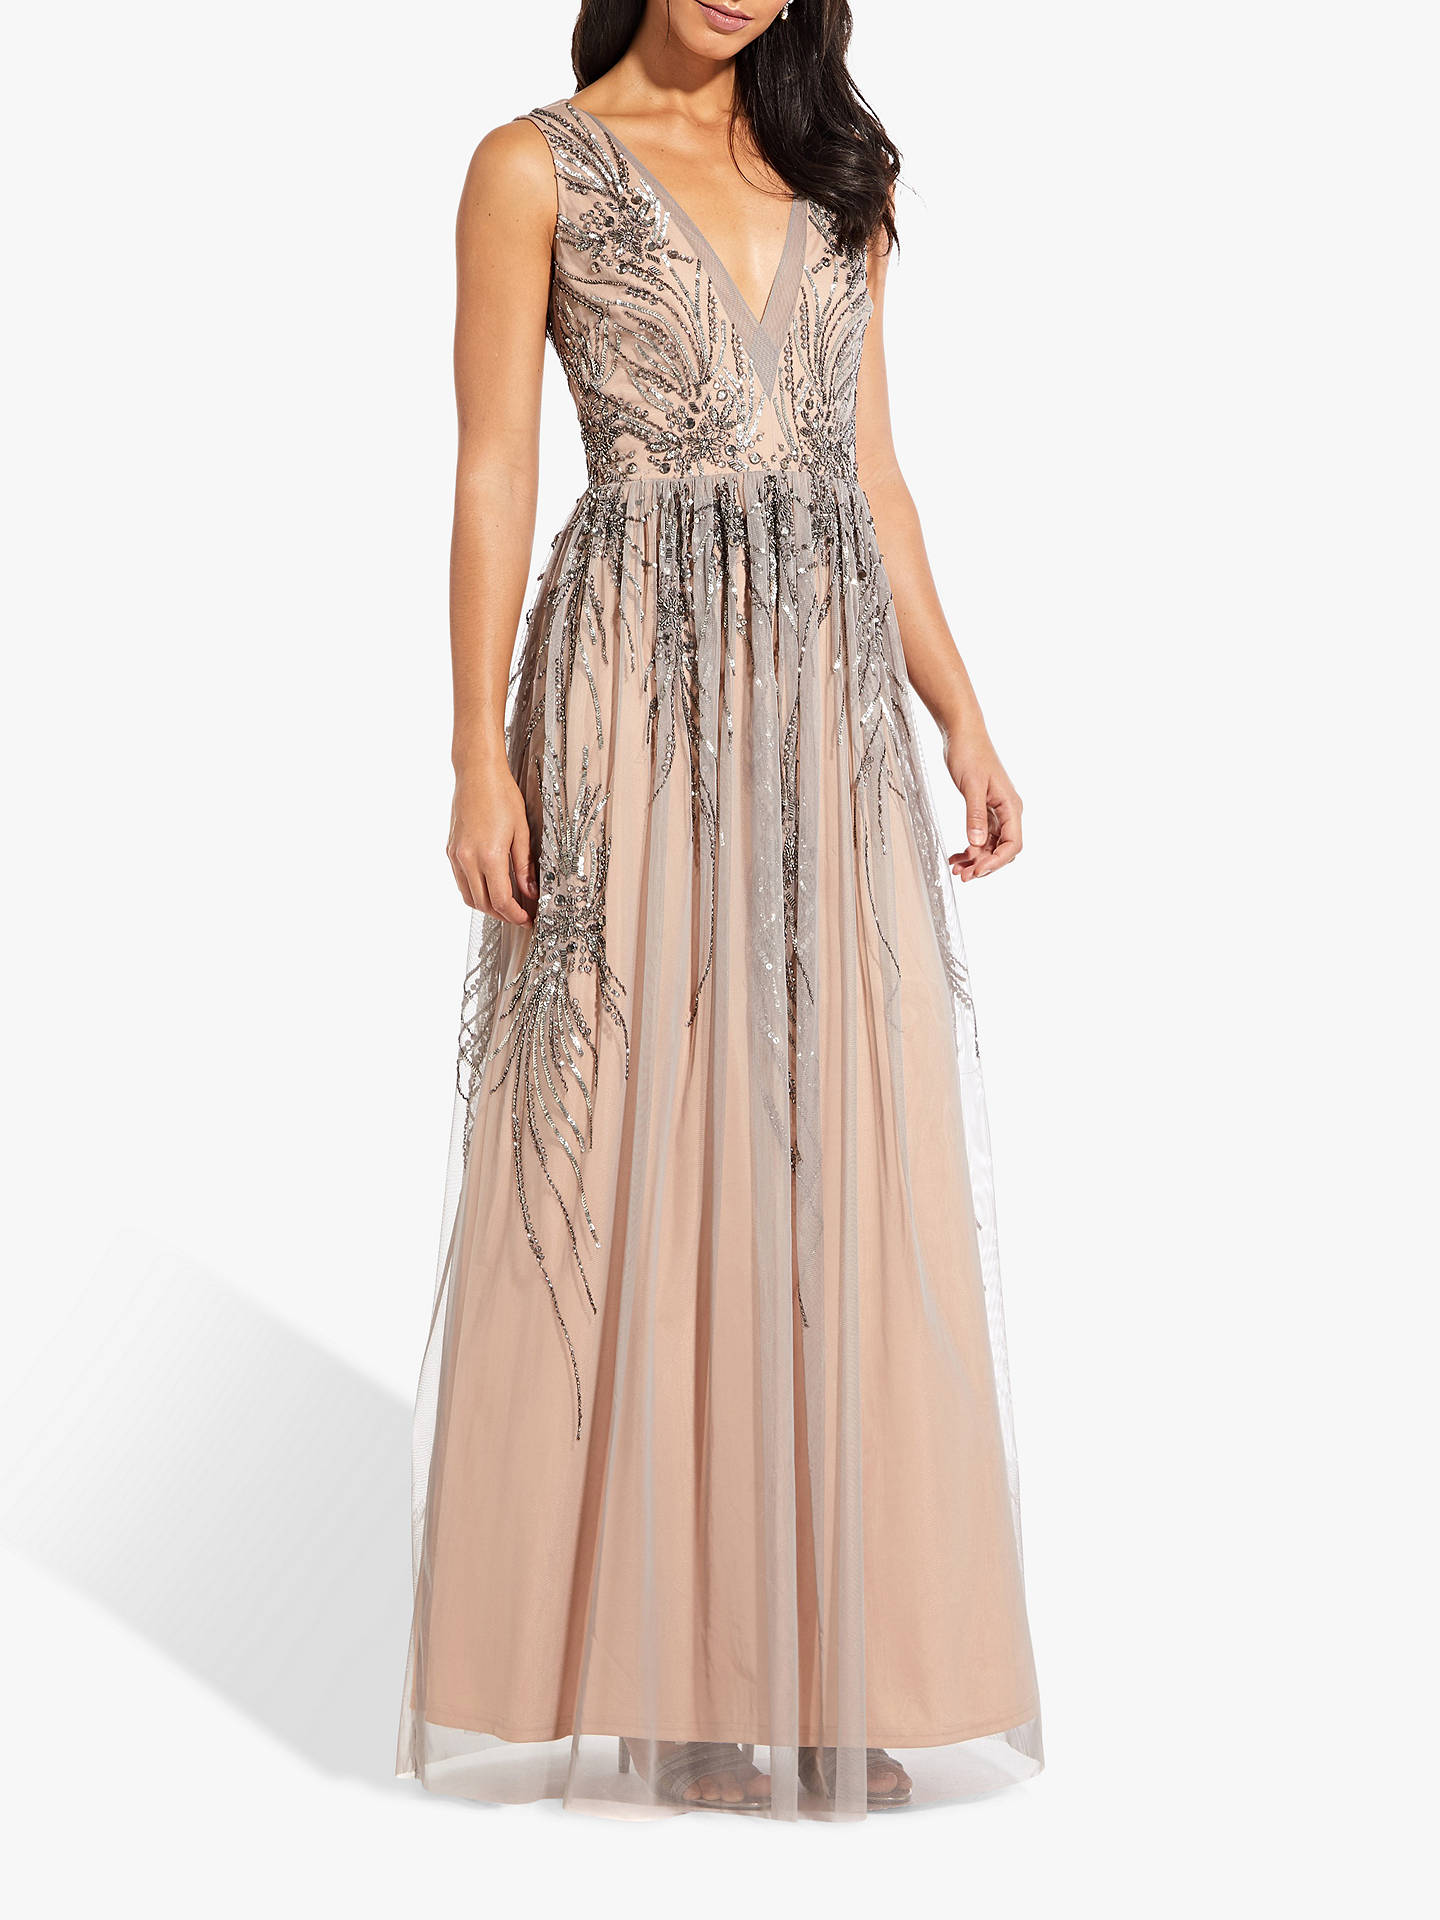 Buy Adrianna Papell Beaded Long Dress, Mercury/Nude, 6 Online at johnlewis.com